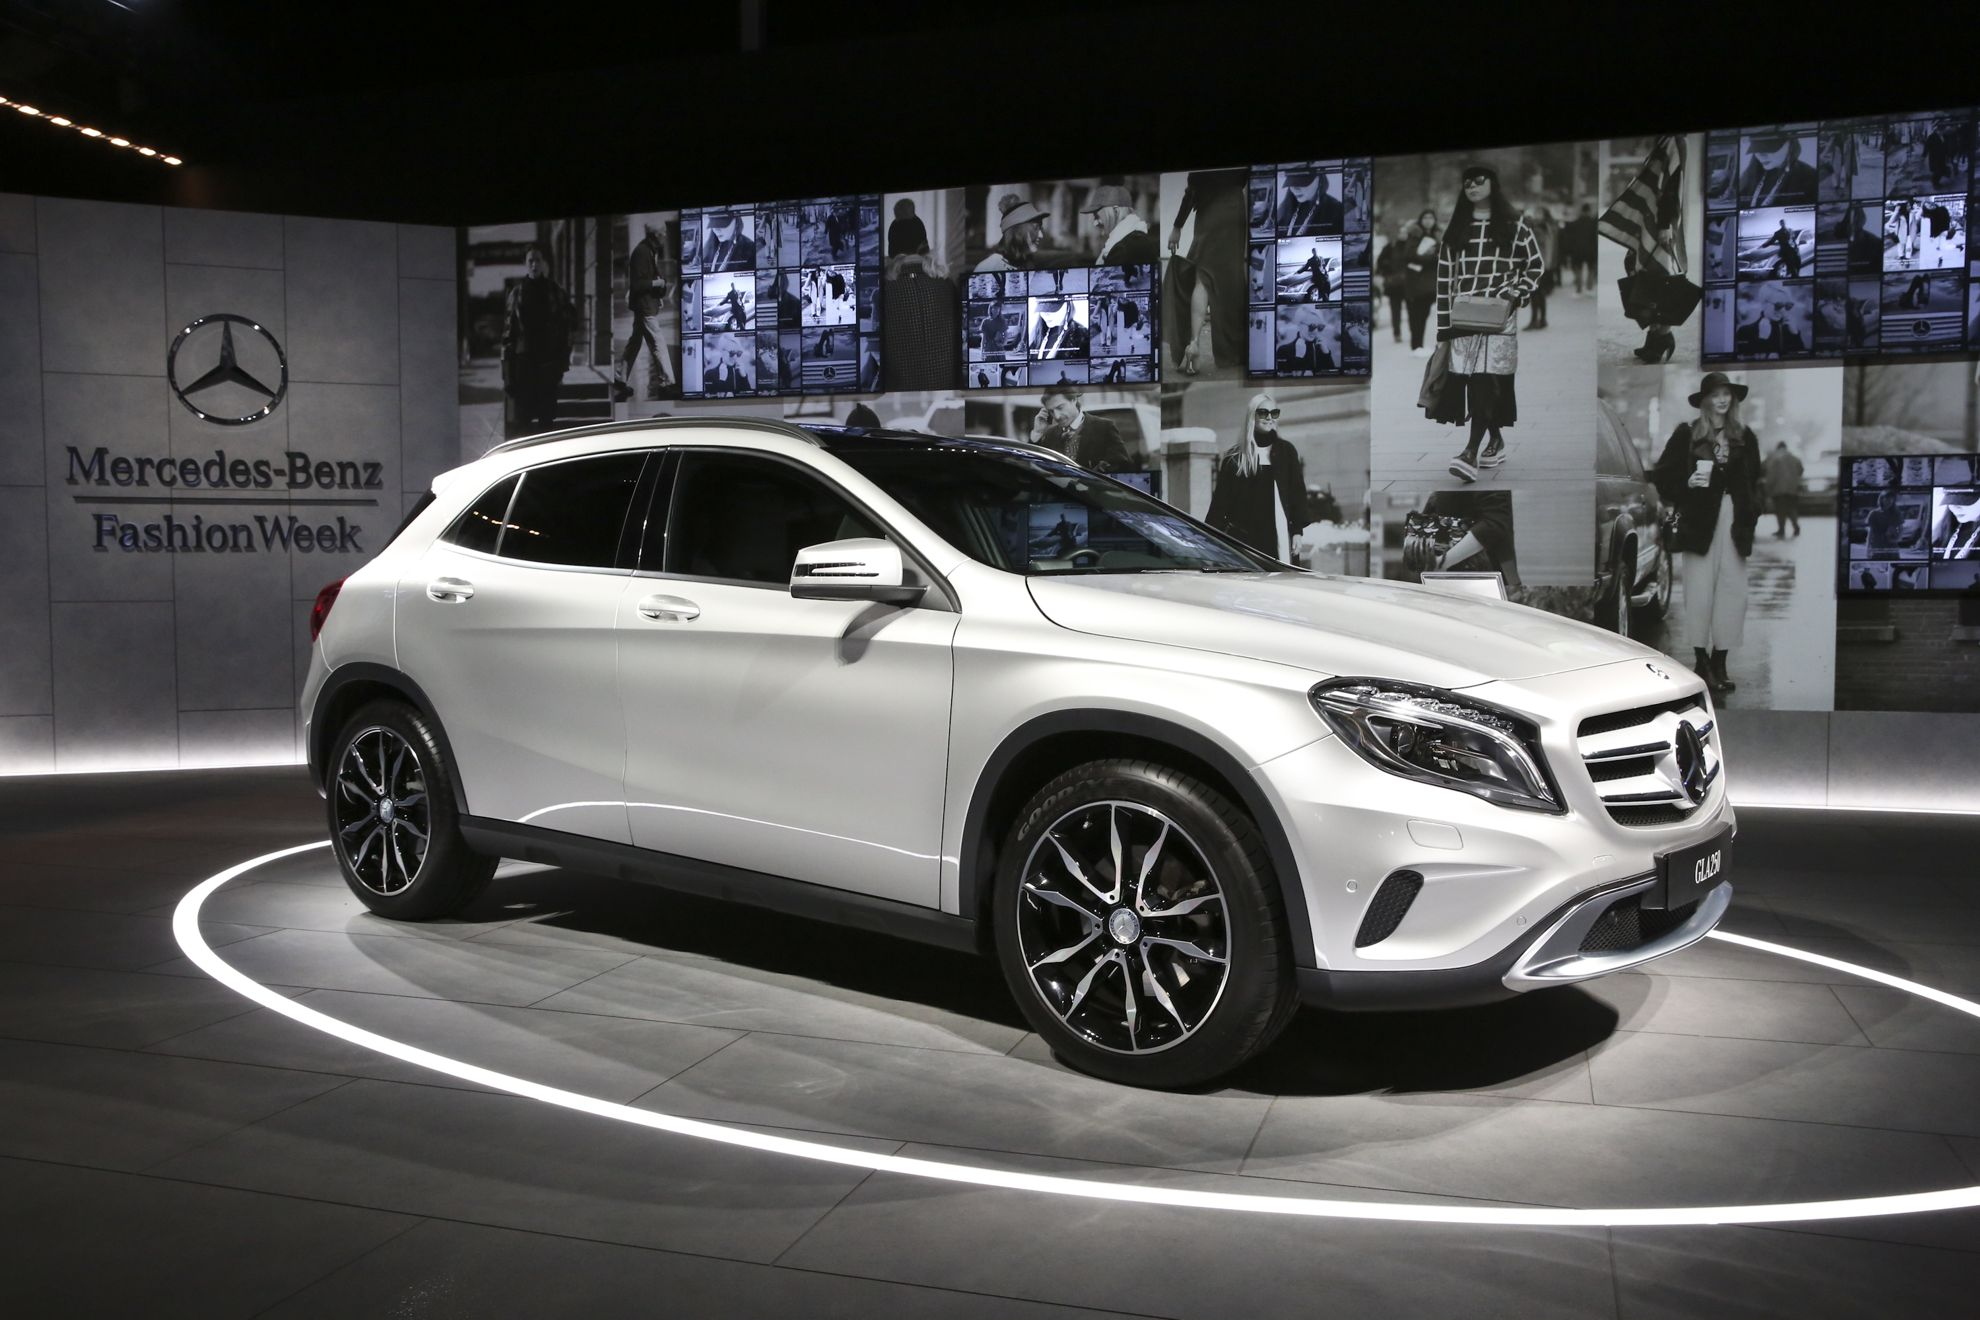 New York Fashion Week - Mercedes Benz GLA